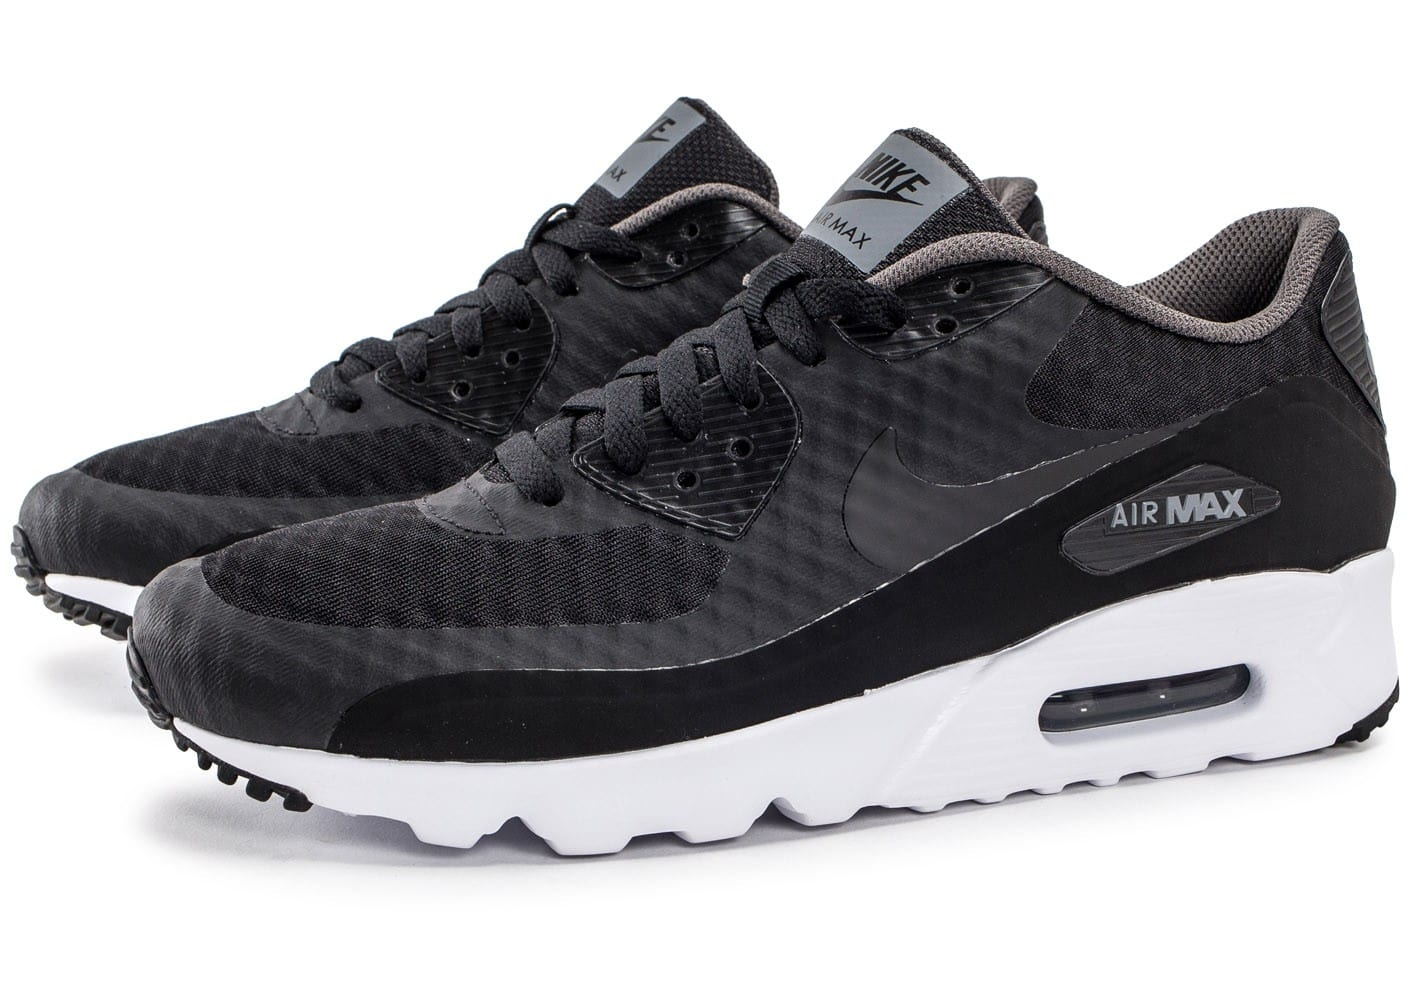 nike air max 90 ultra essential noire et grise chaussures homme chausport. Black Bedroom Furniture Sets. Home Design Ideas